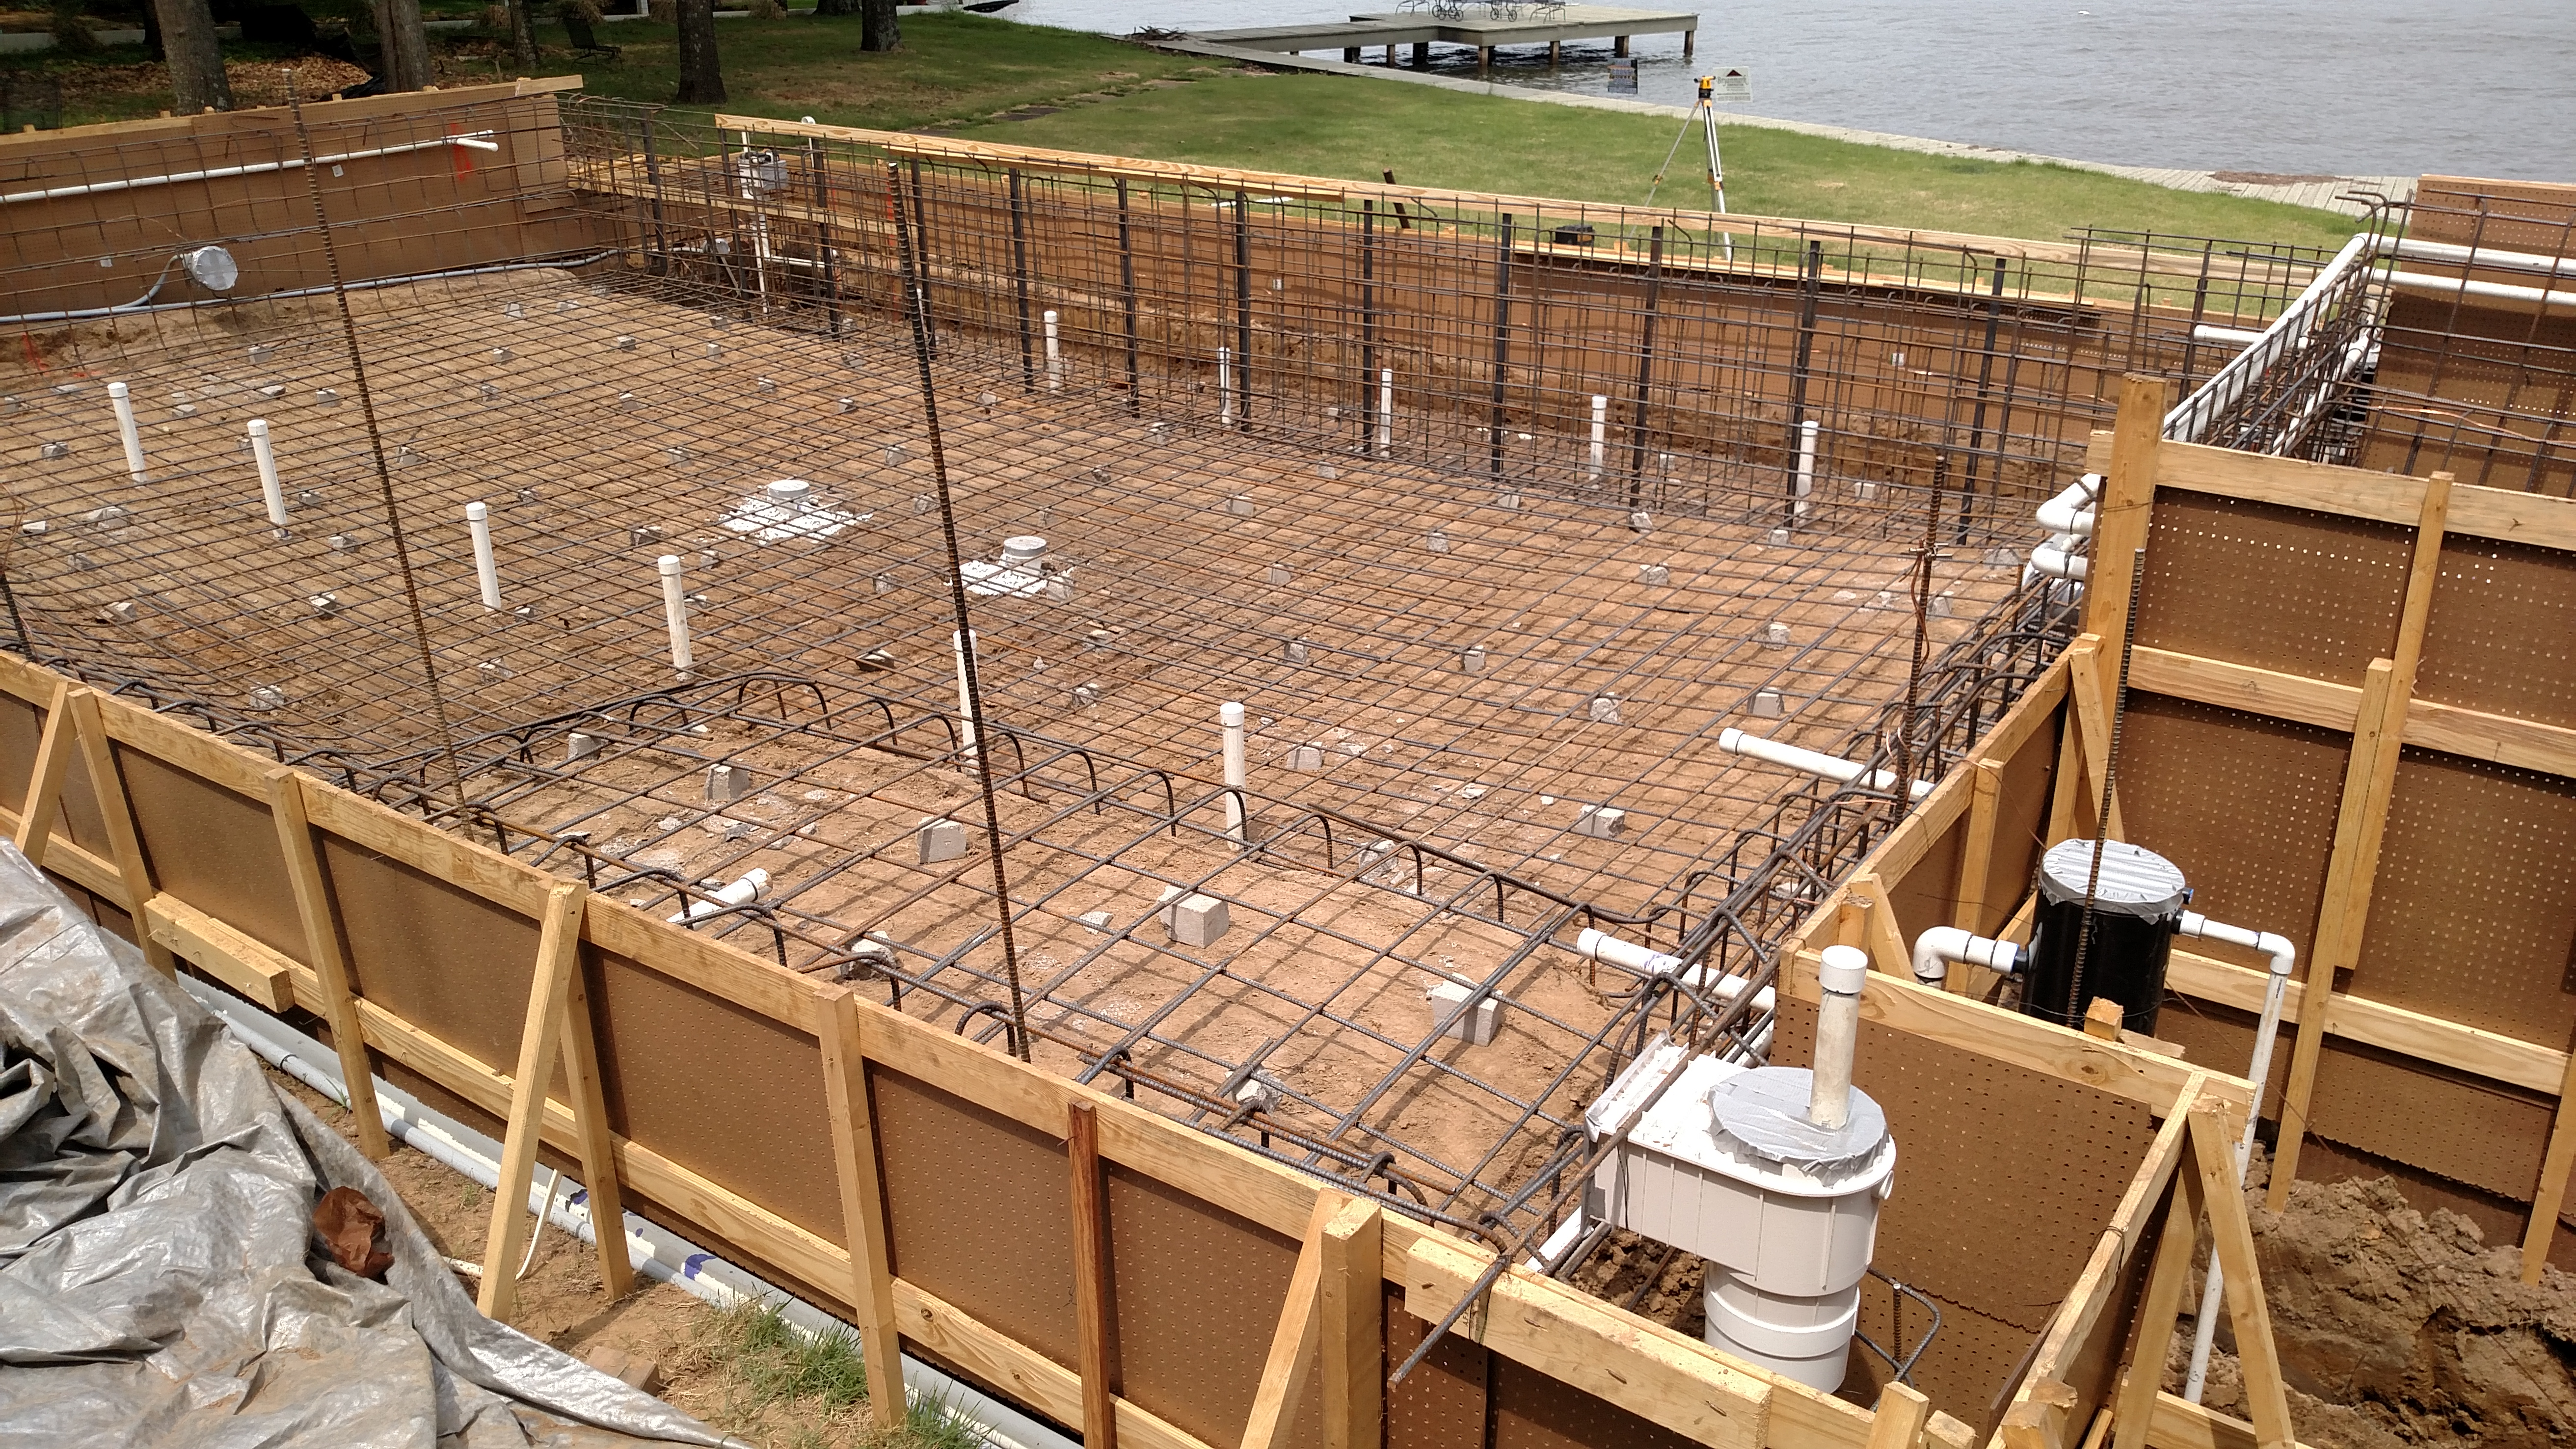 tying steel and running plumbing to the pool